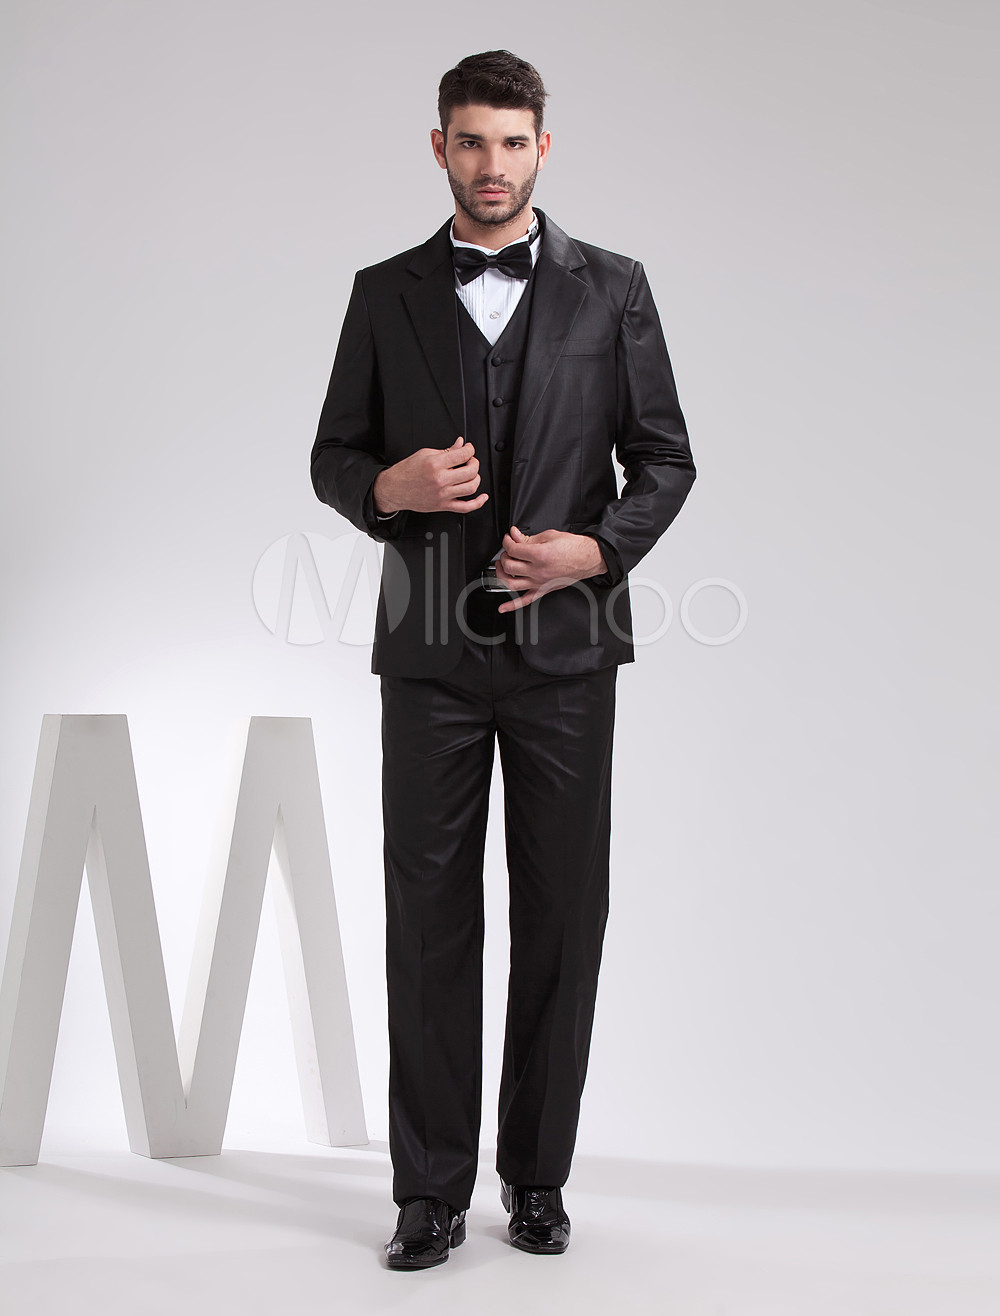 Bridesmaid trends 2017 - Handsome Black Serge Groom Wedding Tuxedo Milanoo Com